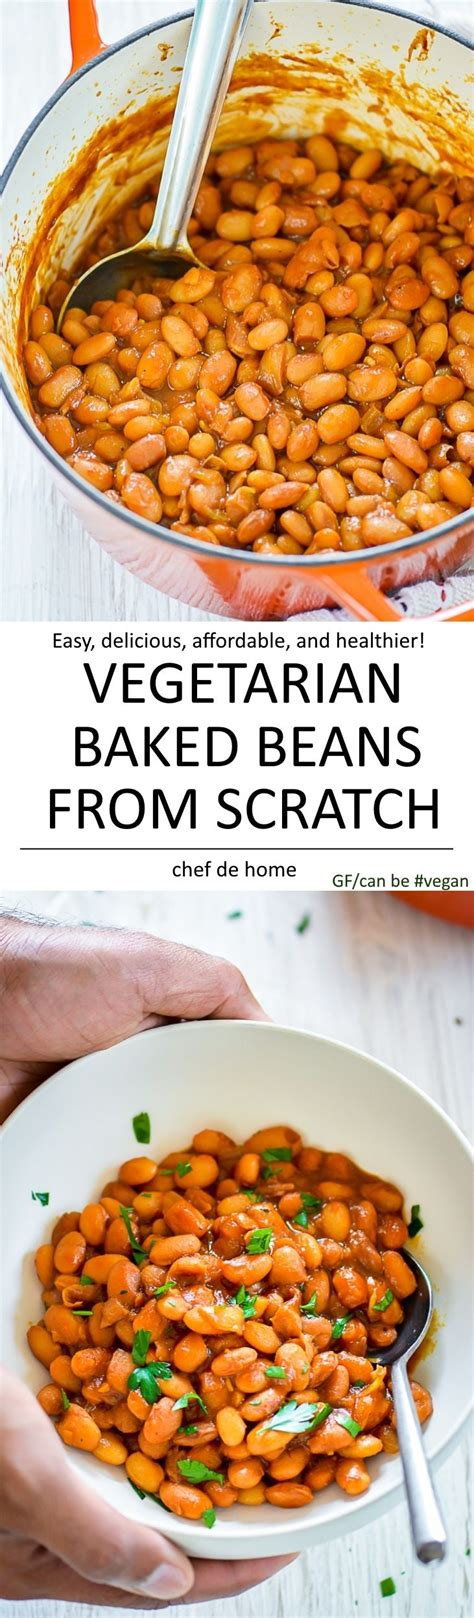 1000 ideas about vegetarian baked beans on cooker baked beans boston baked